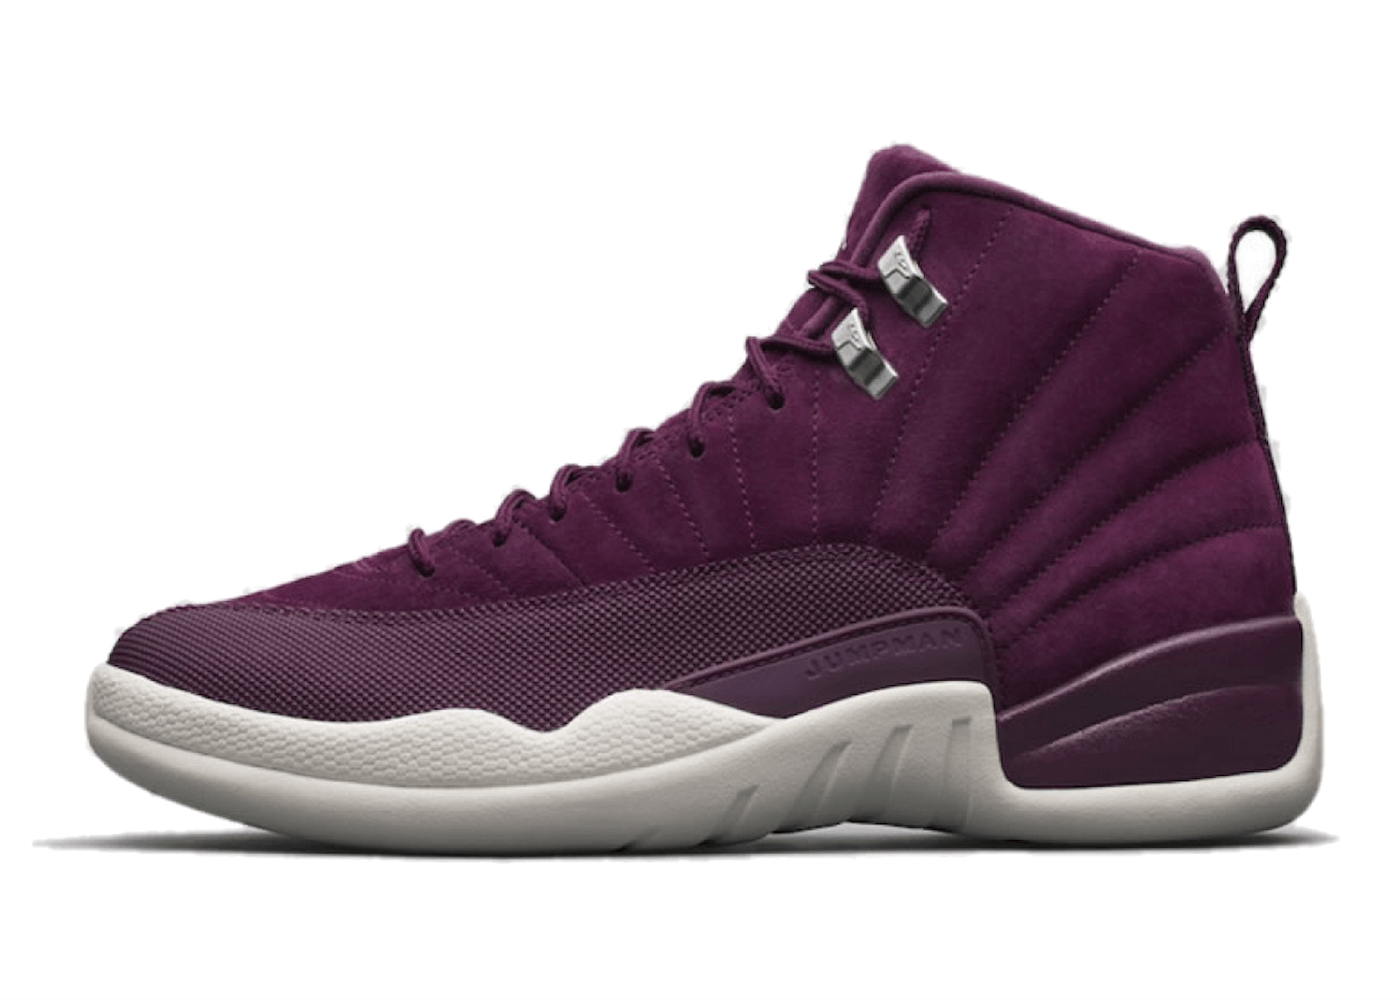 Jordan 12 Retro Bordeauxの写真